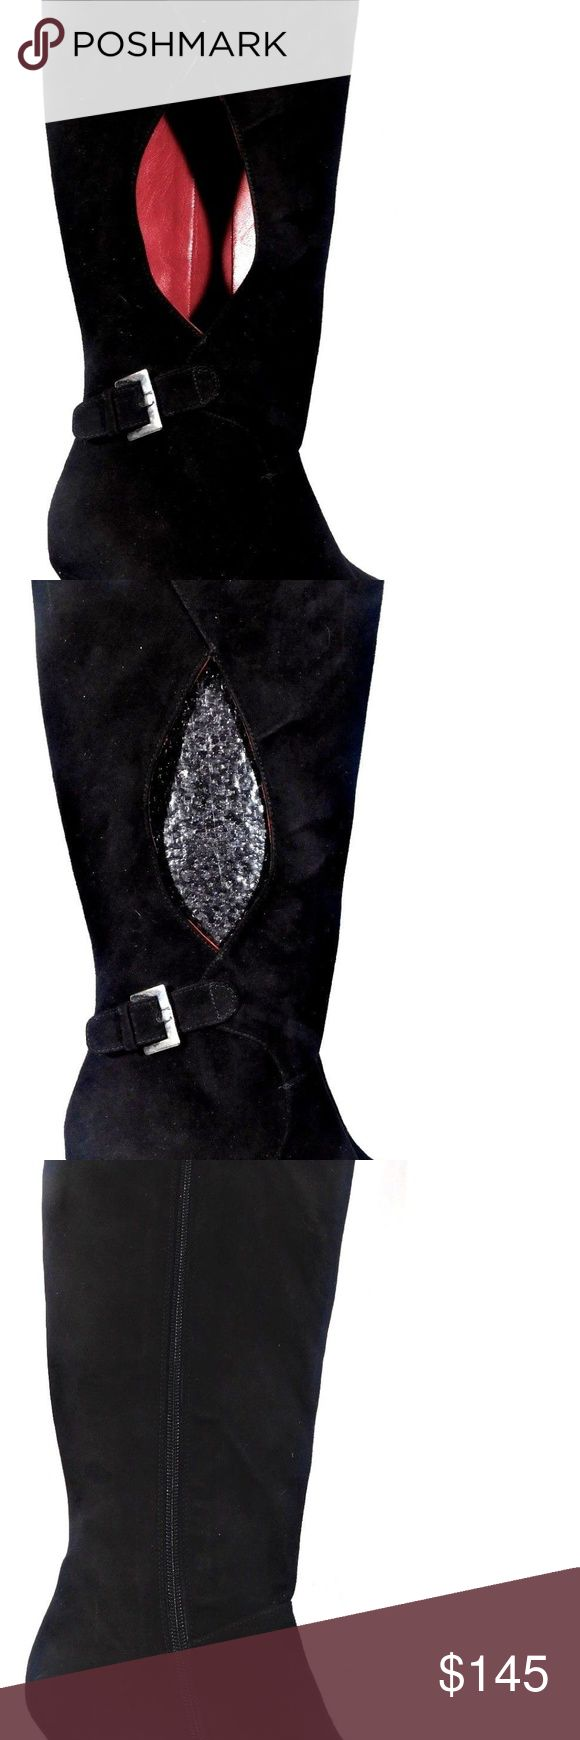 TUCCI SPAIN OLGA HANDMADE BLACK SUEDE BOOTS 7.5M TUCCI SPAIN DESIGNER OLGA HANDMADE BLACK SUEDE BOOTS WITH FULL  ZIPPER AND  SILVER BUCKLE DECORATION AND WINDOW CUTOUT.      SIZE 7.5M           Retail: $375.00 ABSOLUTELY STUNNING WELL MADE BOOTS WINDOW CUTOUTS ARE CRAZY, SHOW YOUR SKIN OR FISHNET  LEATHER UPPER, LEATHER SOLE, RED SOFT AS BUTTER LEATHER LINING     Measurement: Shaft 16 inches Calf:15 inches; Heel: 3 in TUCCI Shoes Heeled Boots